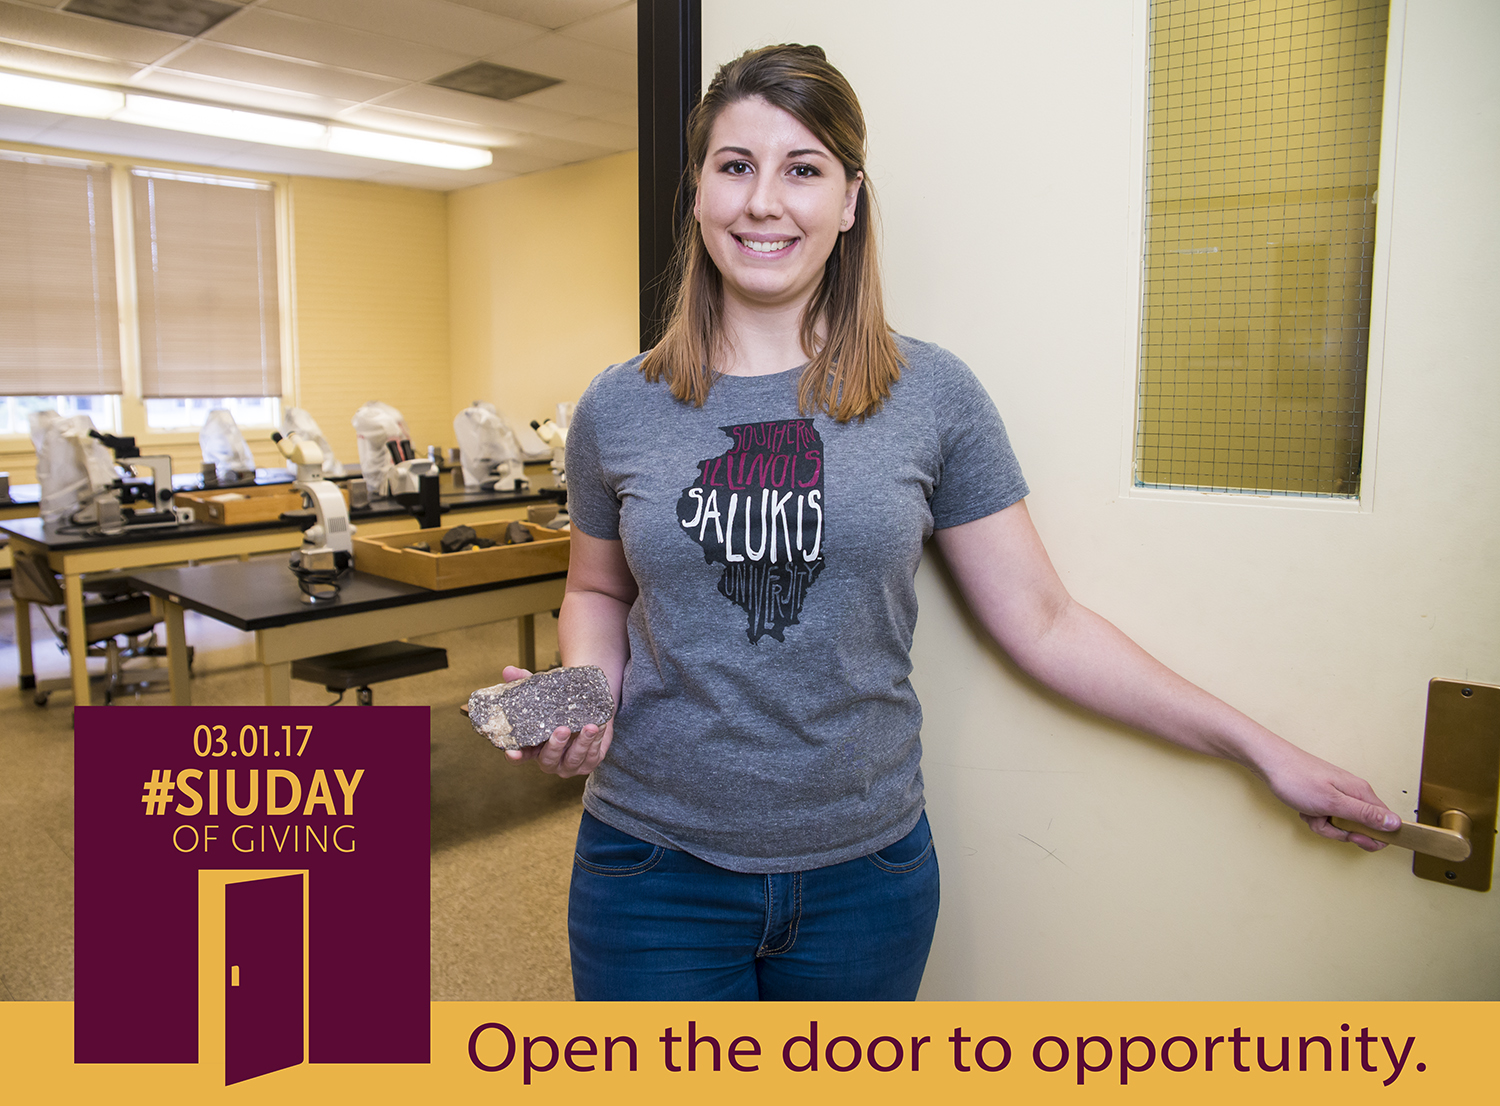 siu day of giving: open the door to opportunity at College of Science